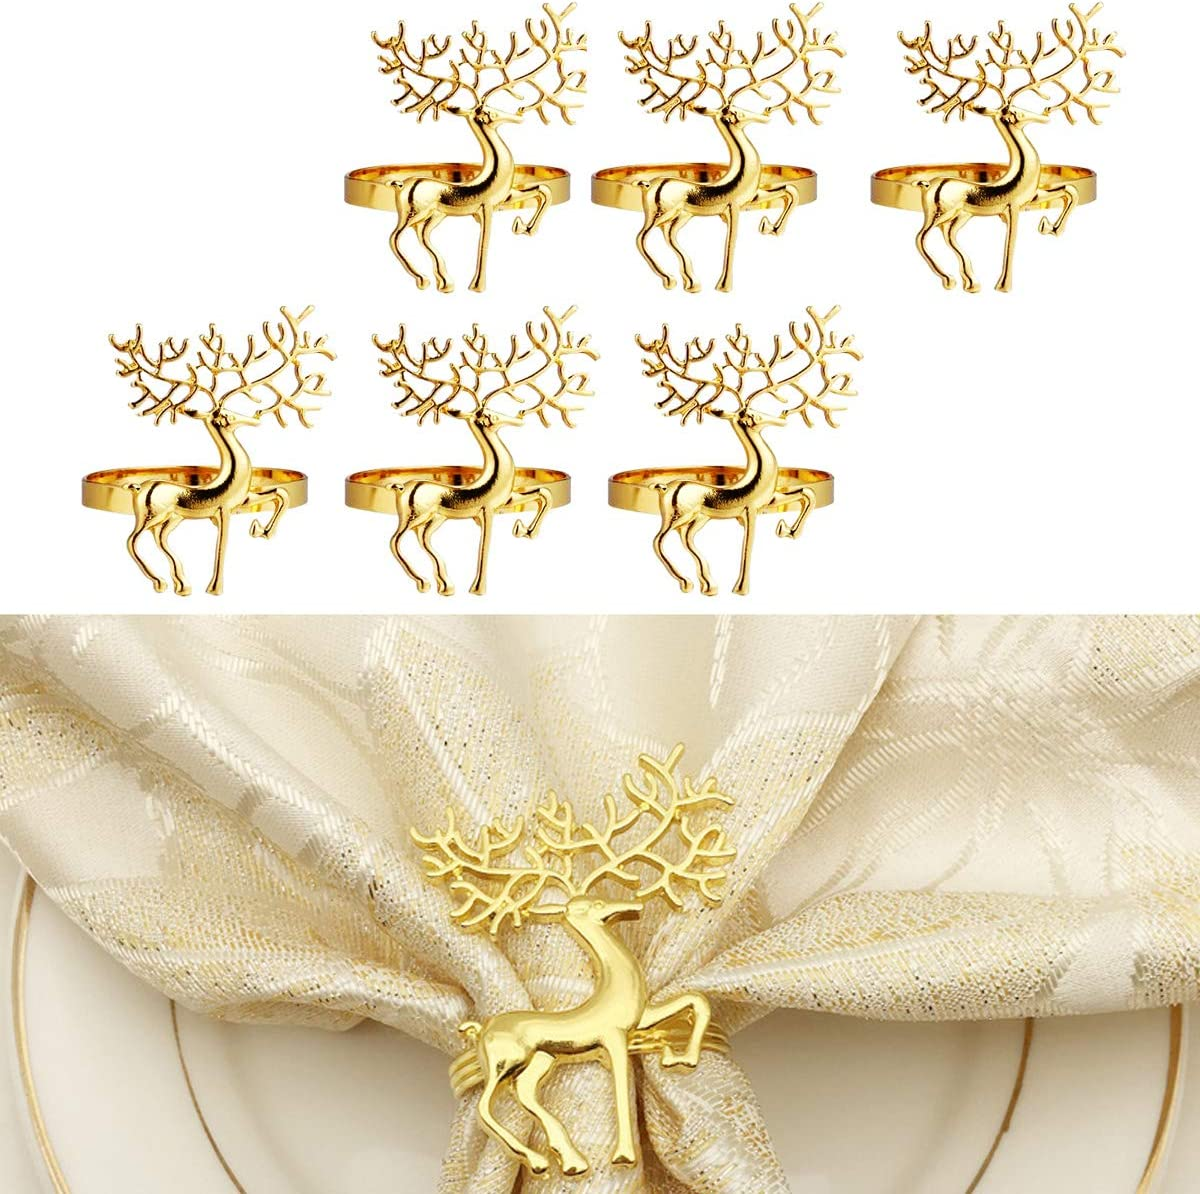 Thanksgiving AW BRIDAL Christmas Napkin Rings Easter Gold Reindeer Napkin Rings Set of 6 for Holiday Halloween